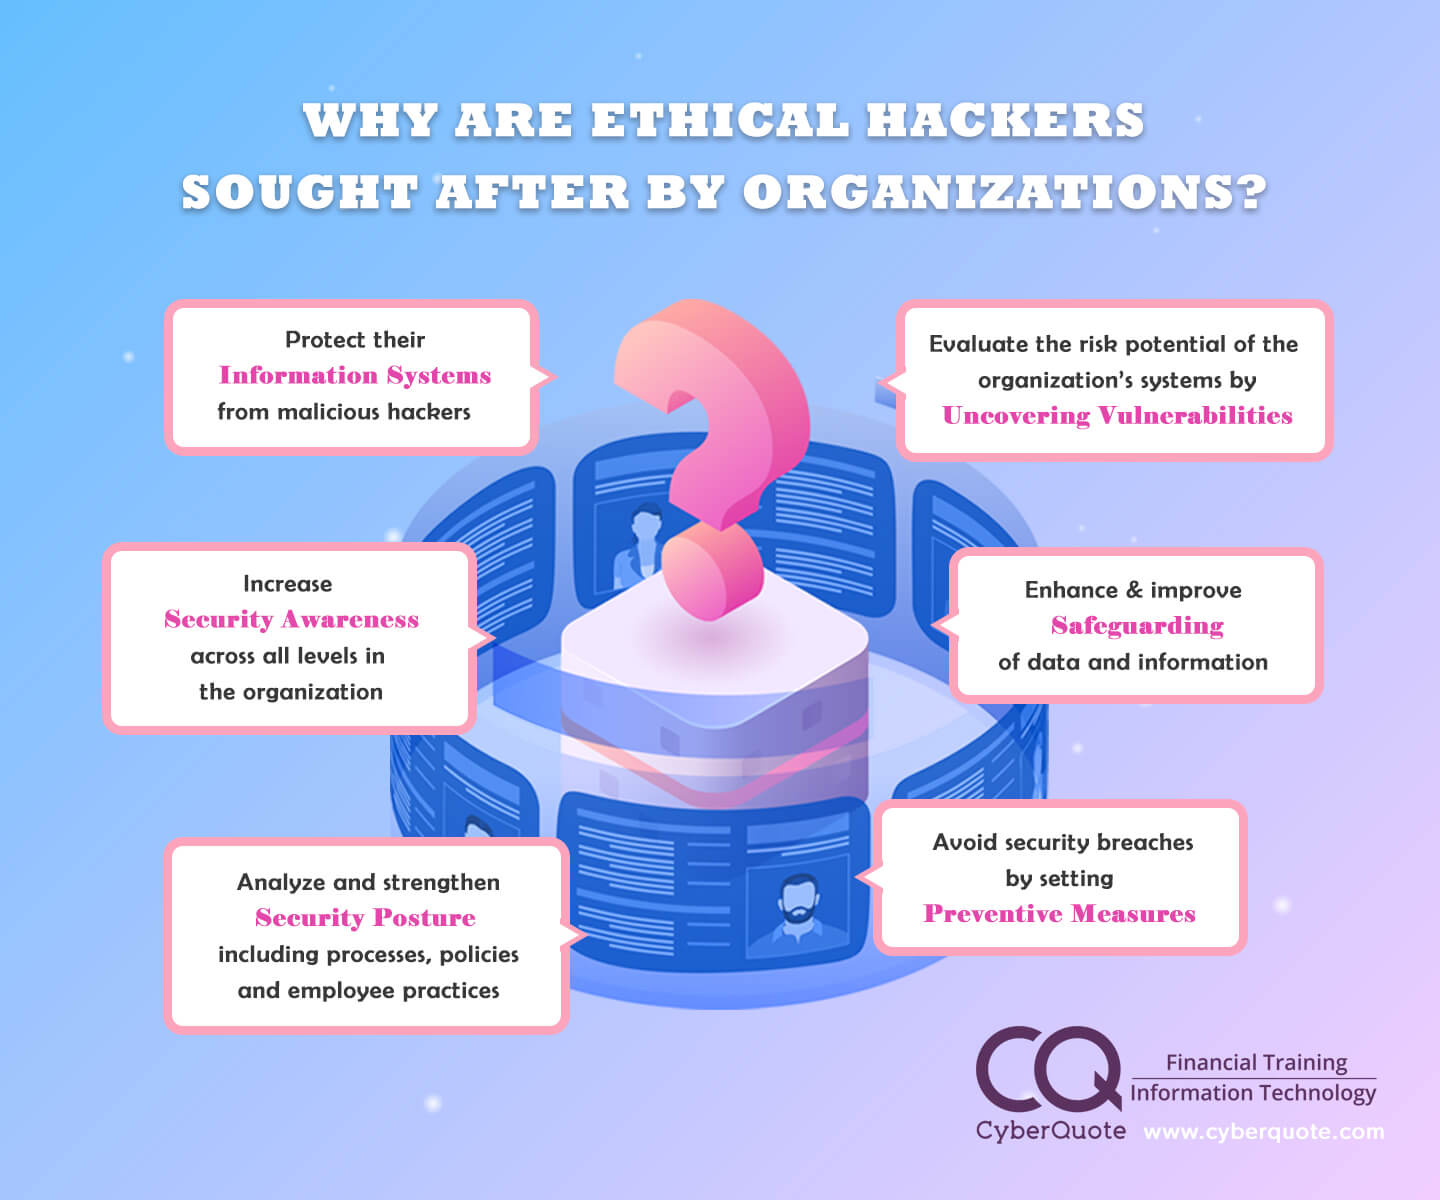 Why Are Ethical Hackers Sought After by Organizations 3